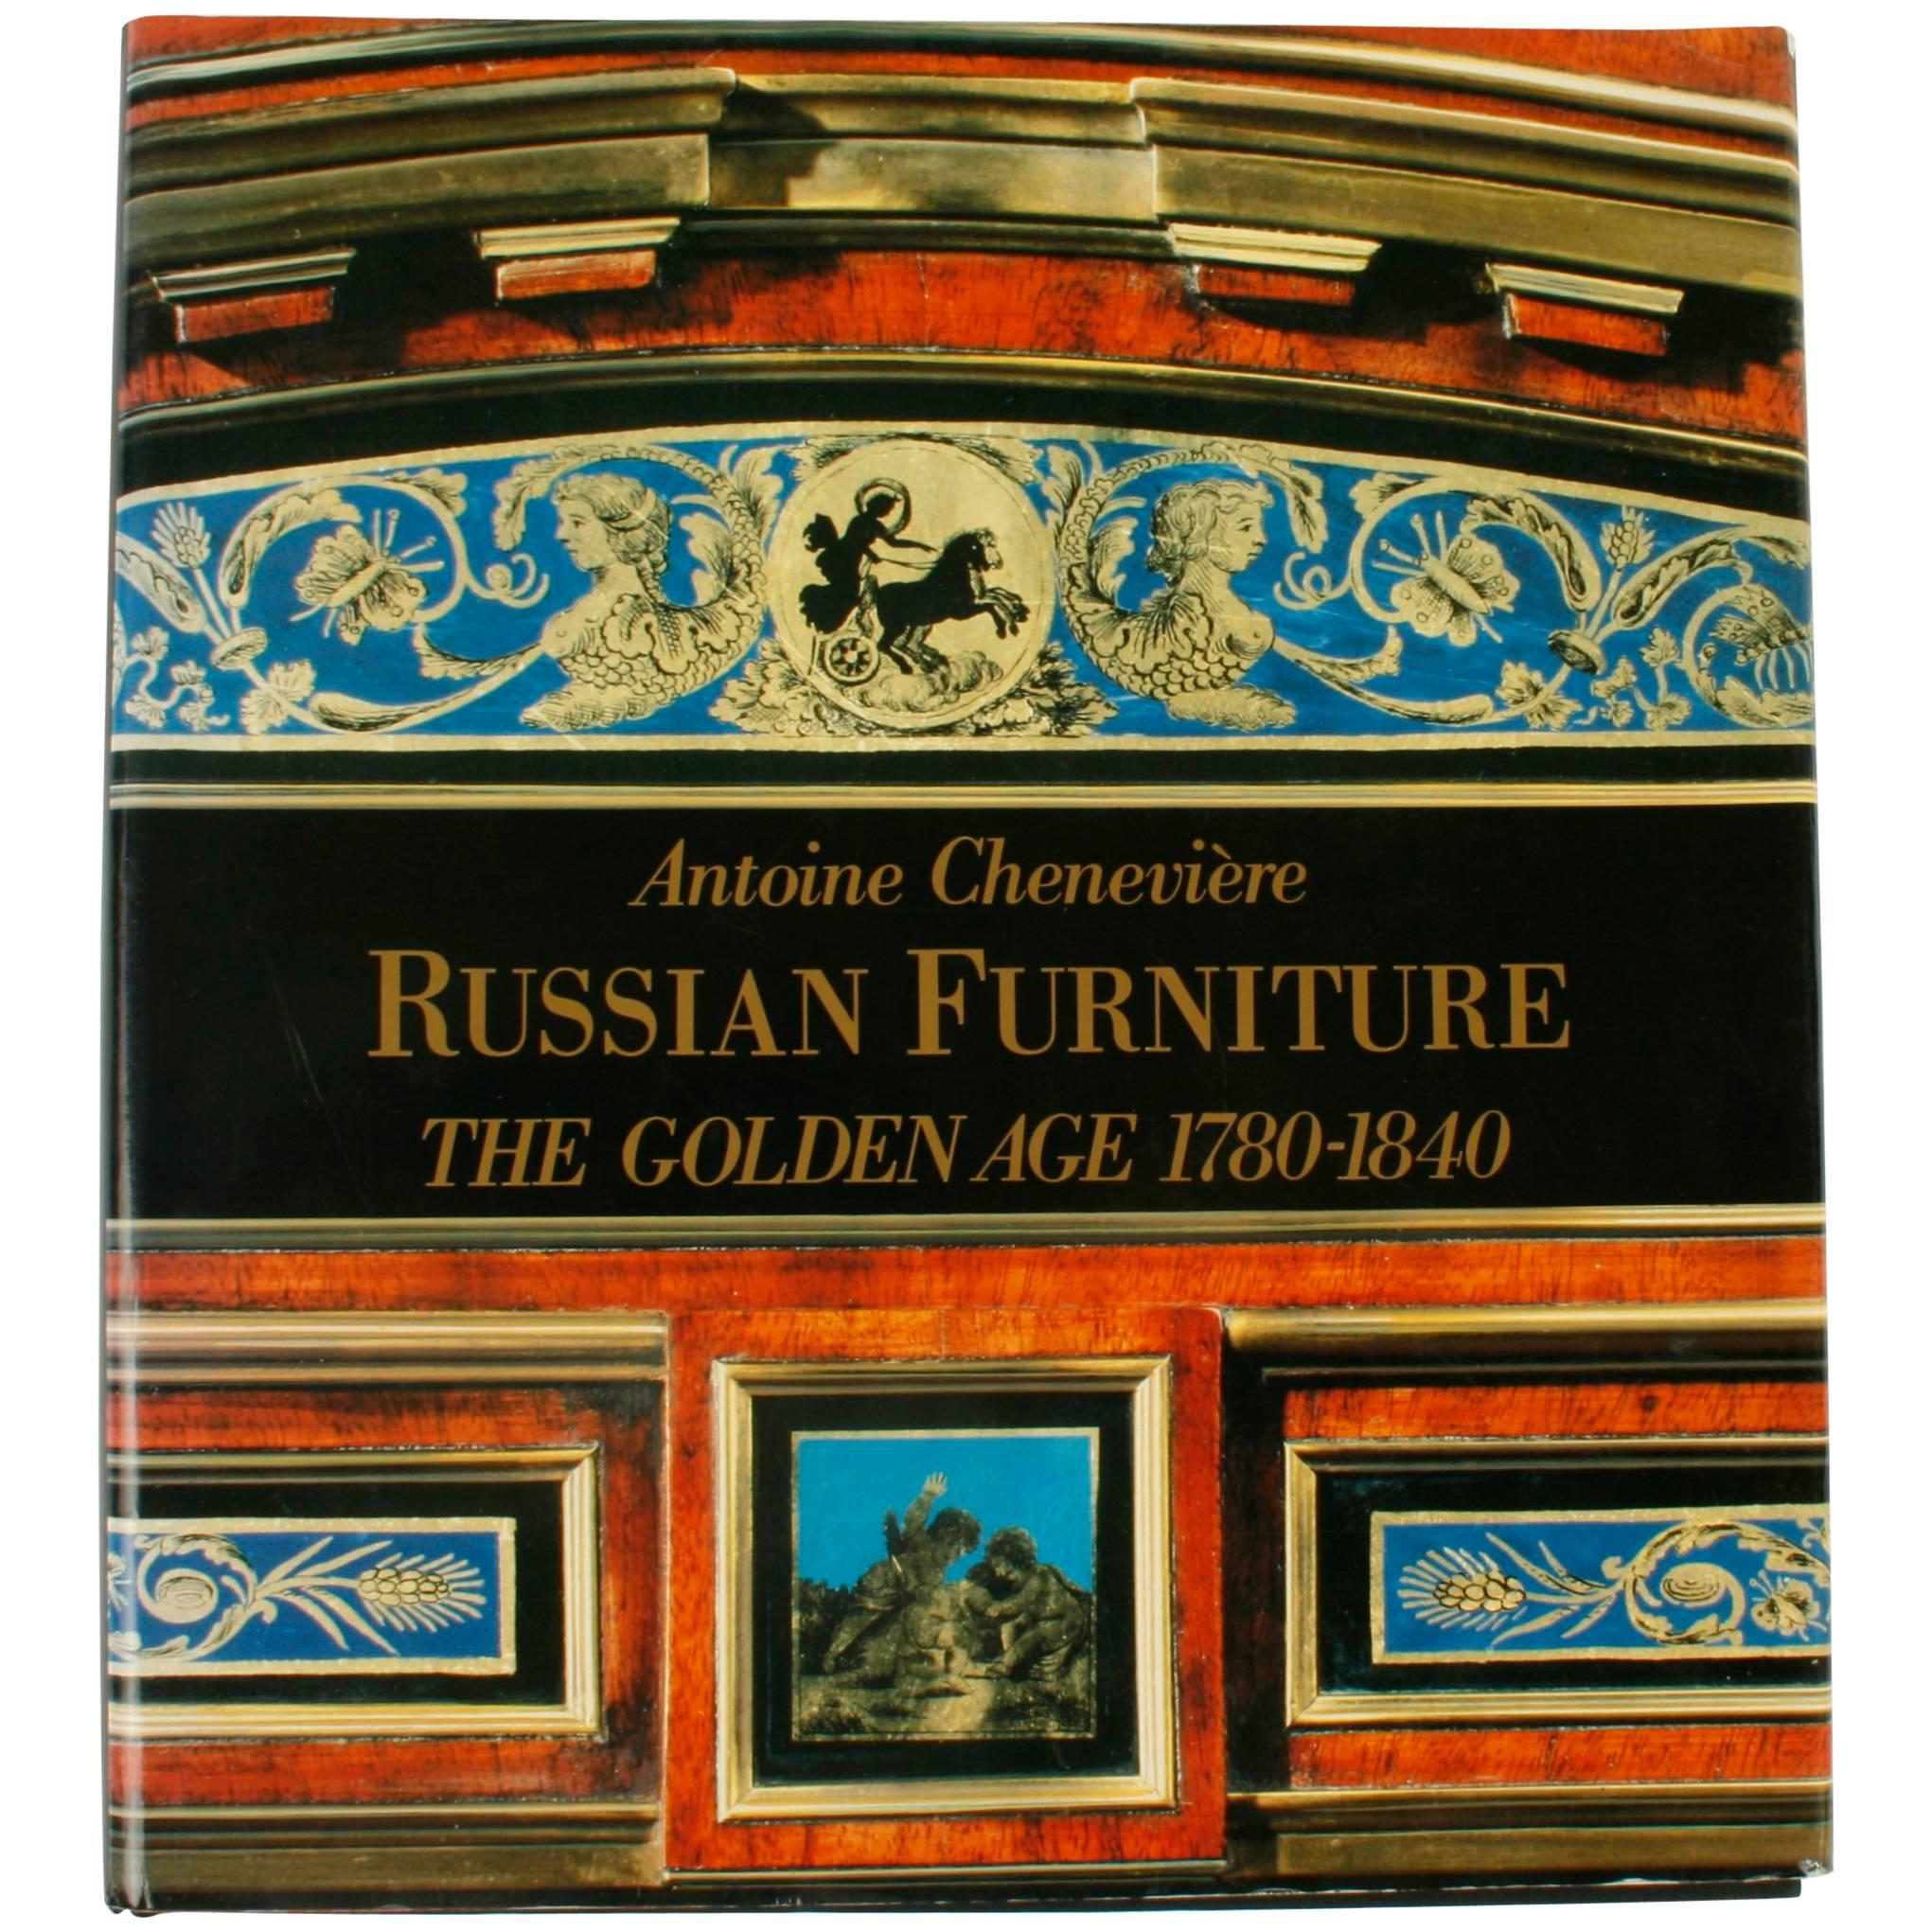 Russian Furniture: The Golden Age 1780-1840 1st Ed by Antoine Chenevière